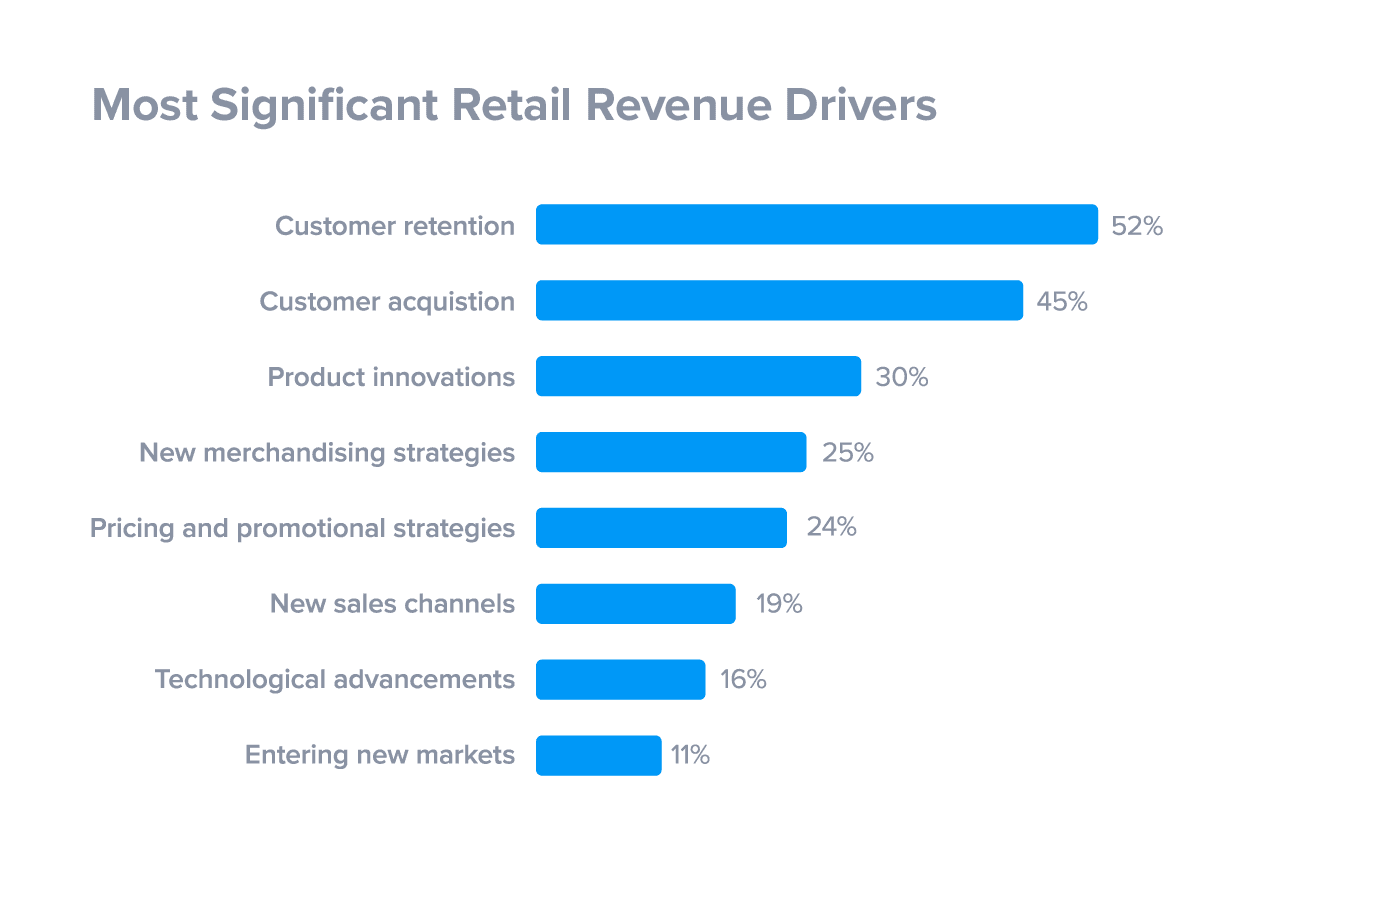 Most Significant Retail Revenue Drivers